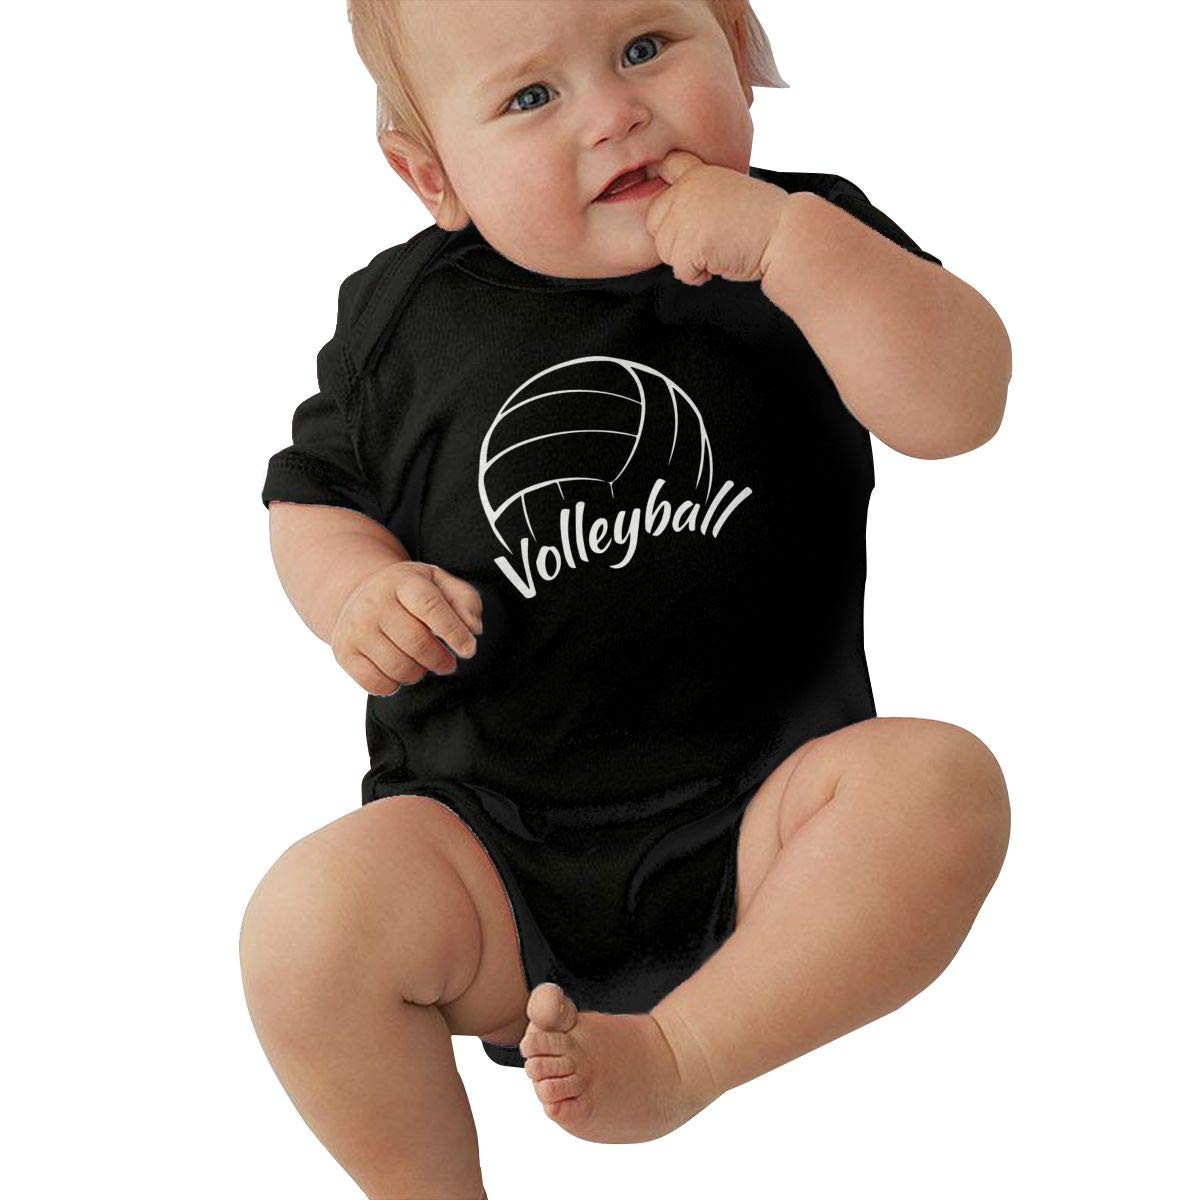 Short Sleeve Cotton Bodysuit for Unisex Baby Soft Love is Volleyball Jumpsuit